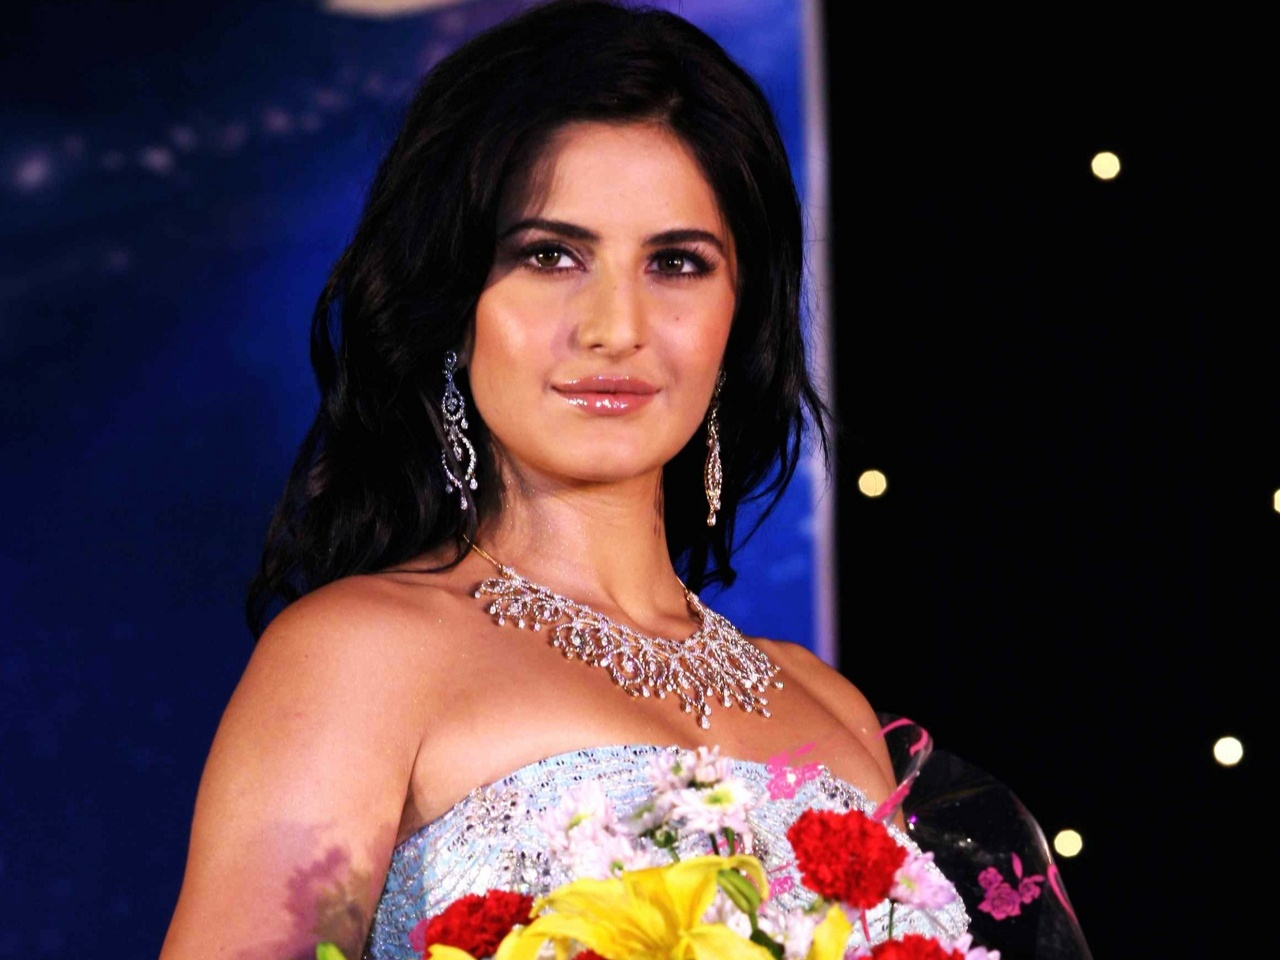 Indian Actress Katrina Kaif Wallpapers In Jpg Format For